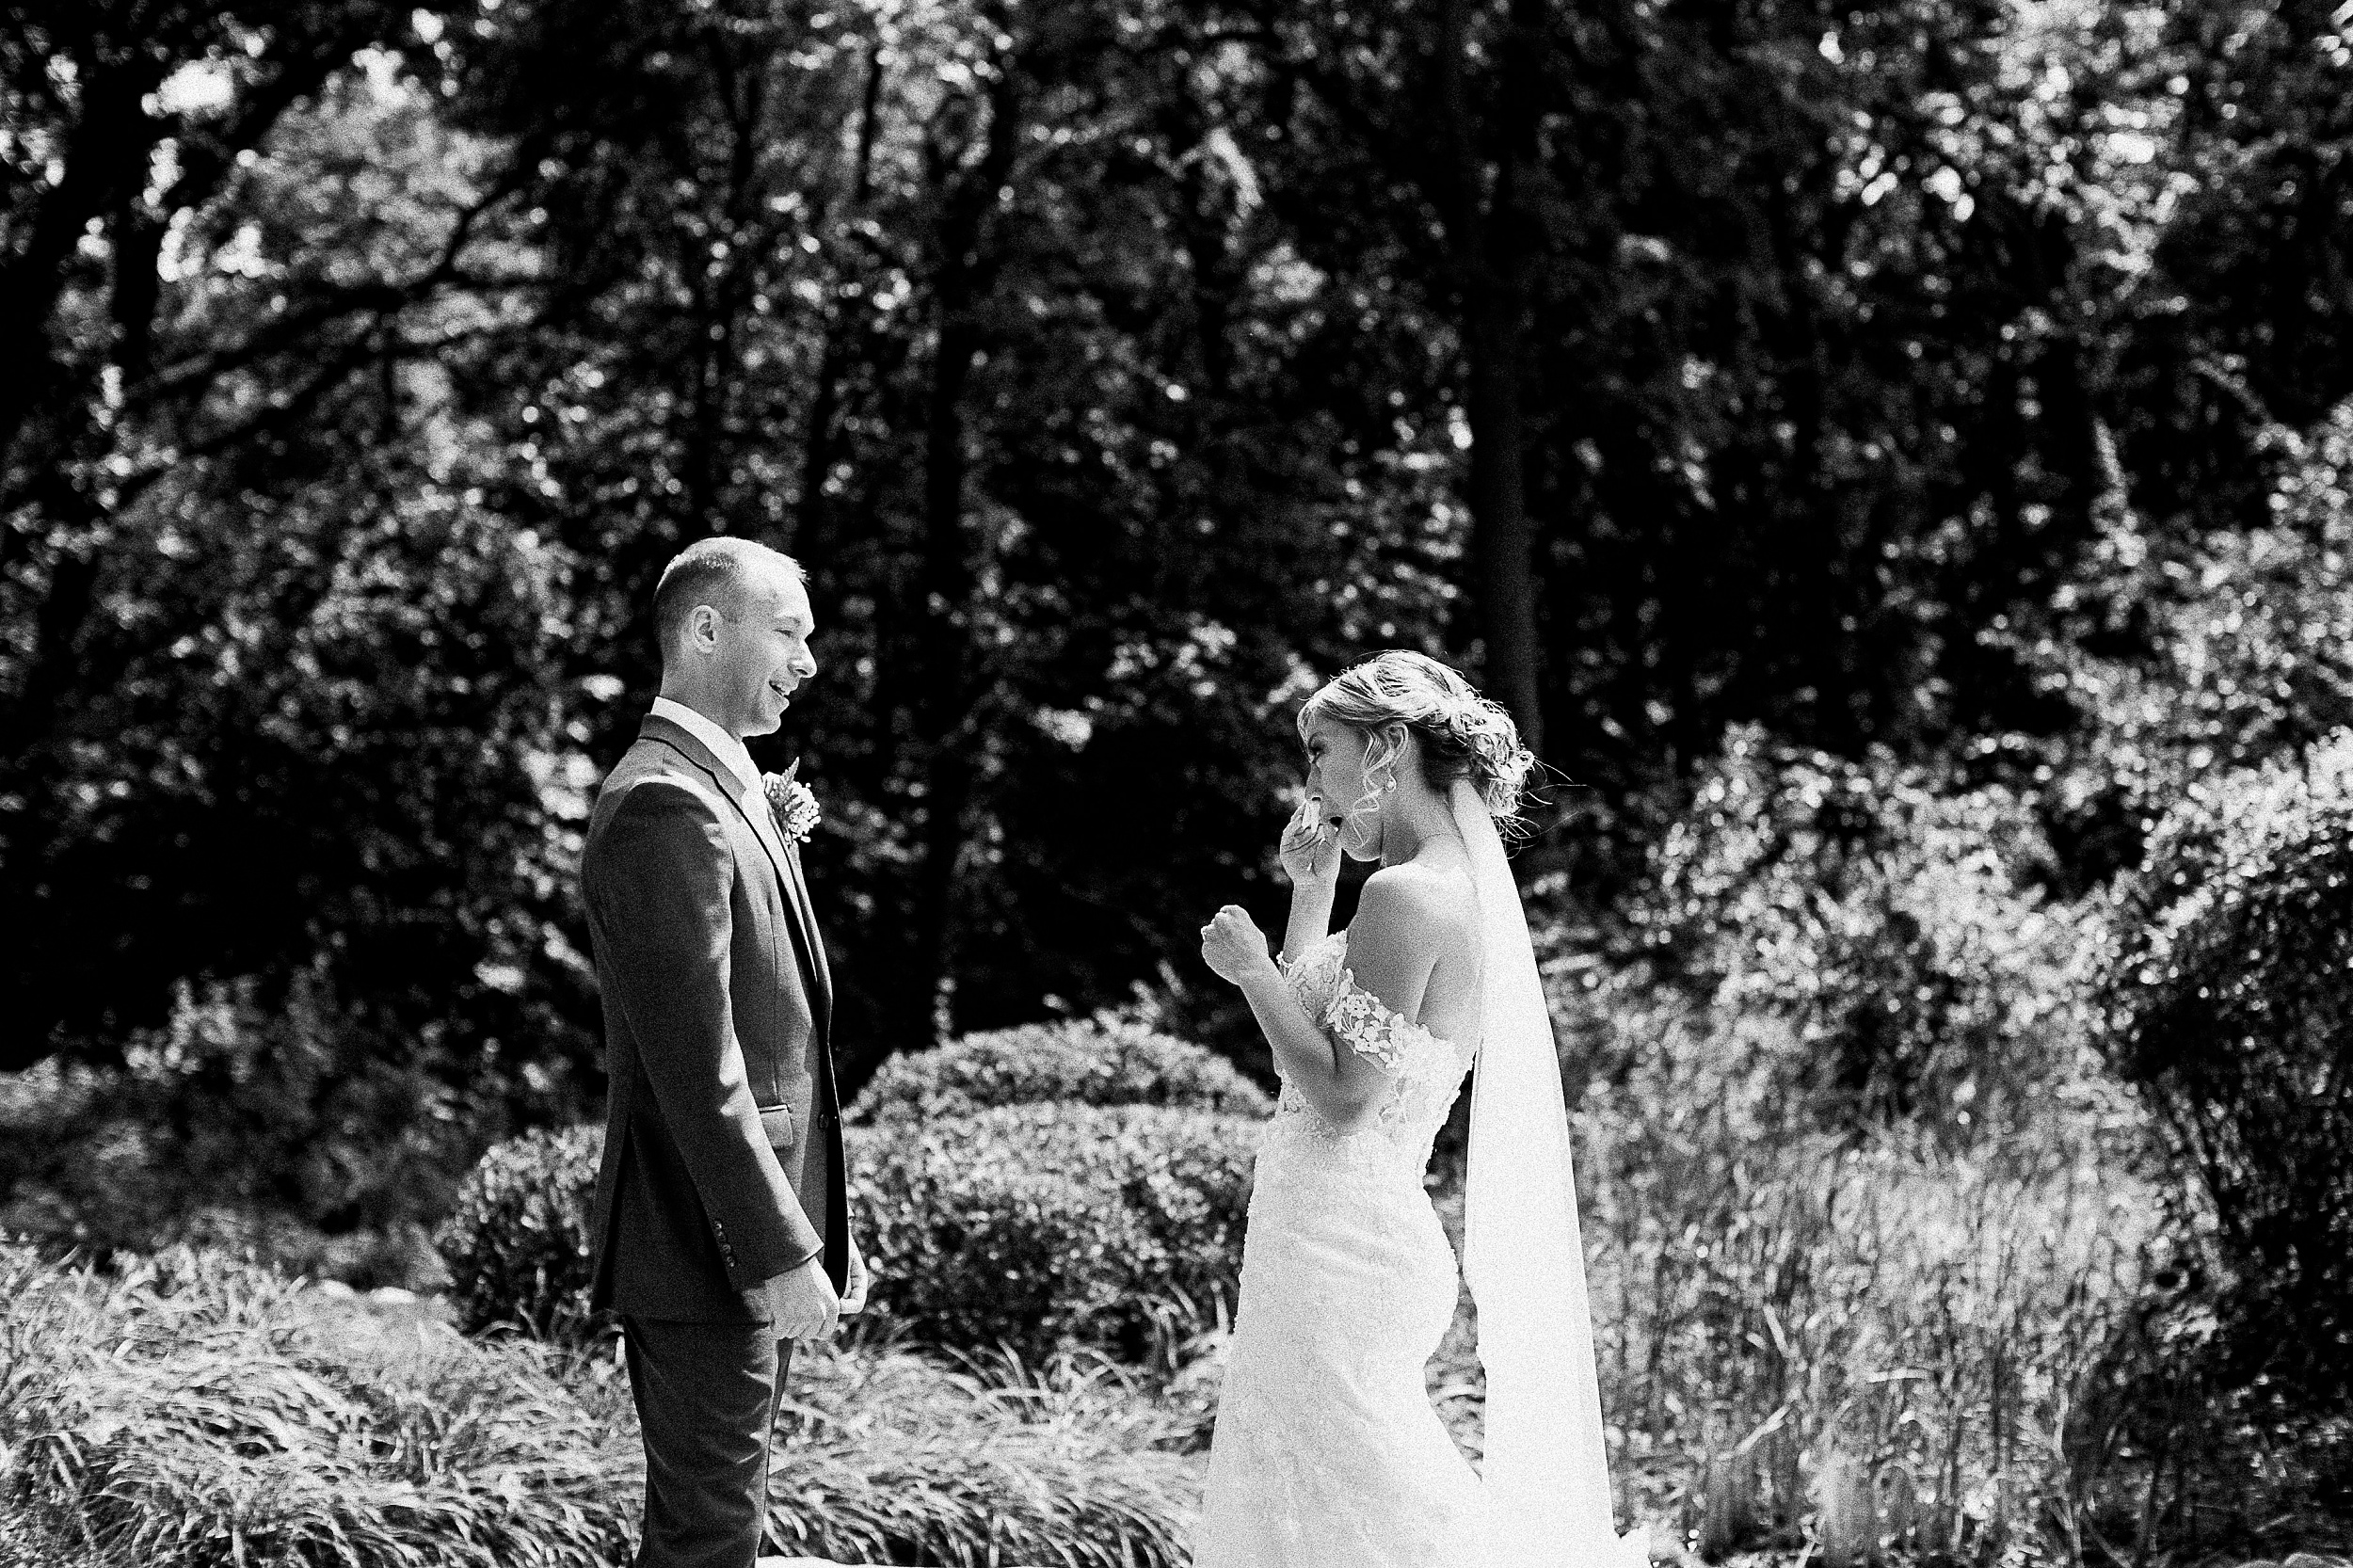 monte-bello-estates-lemont-il-wedding-photography_050.jpg